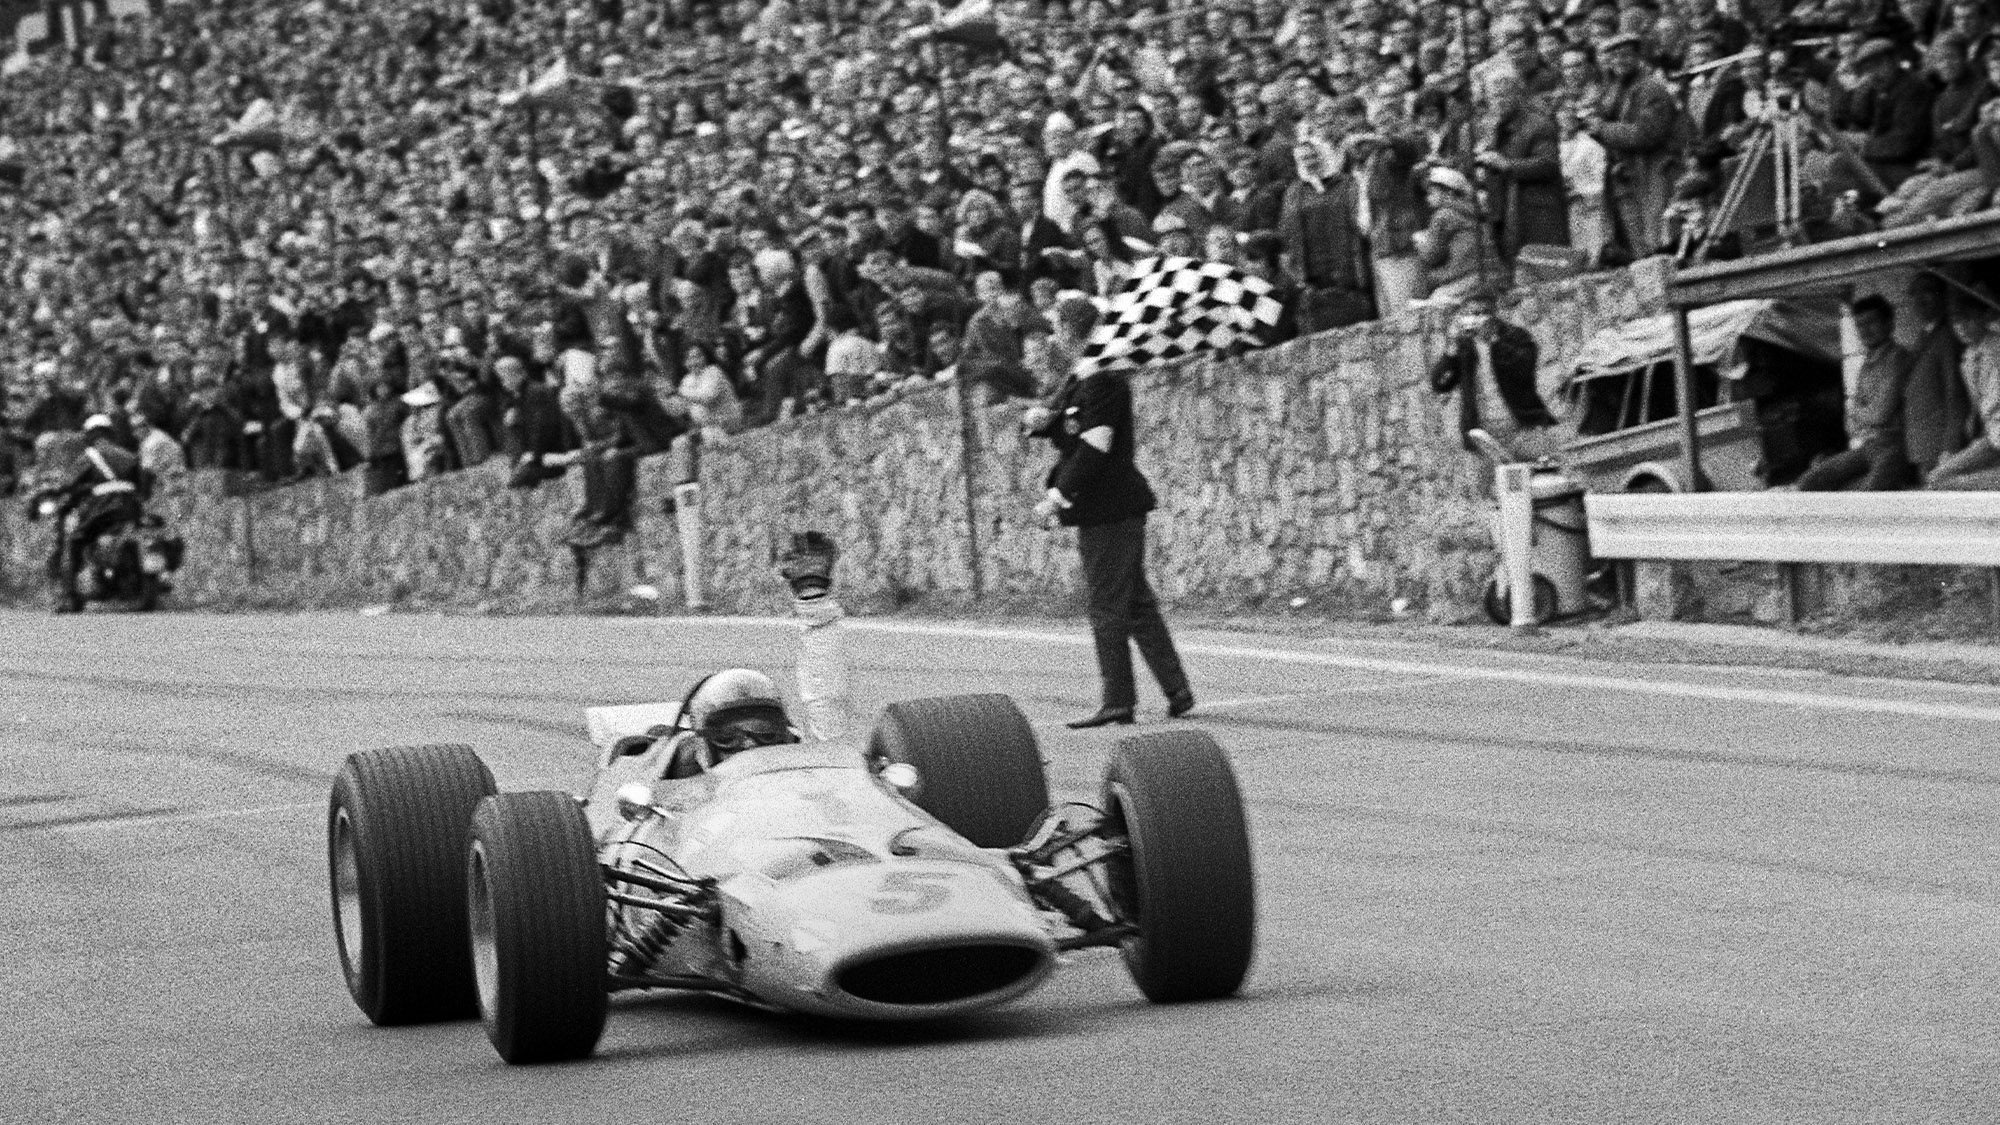 Bruce McLaren crosses the line at Spa Francorchamps to win the 1968 F1 Belgian Grand prix